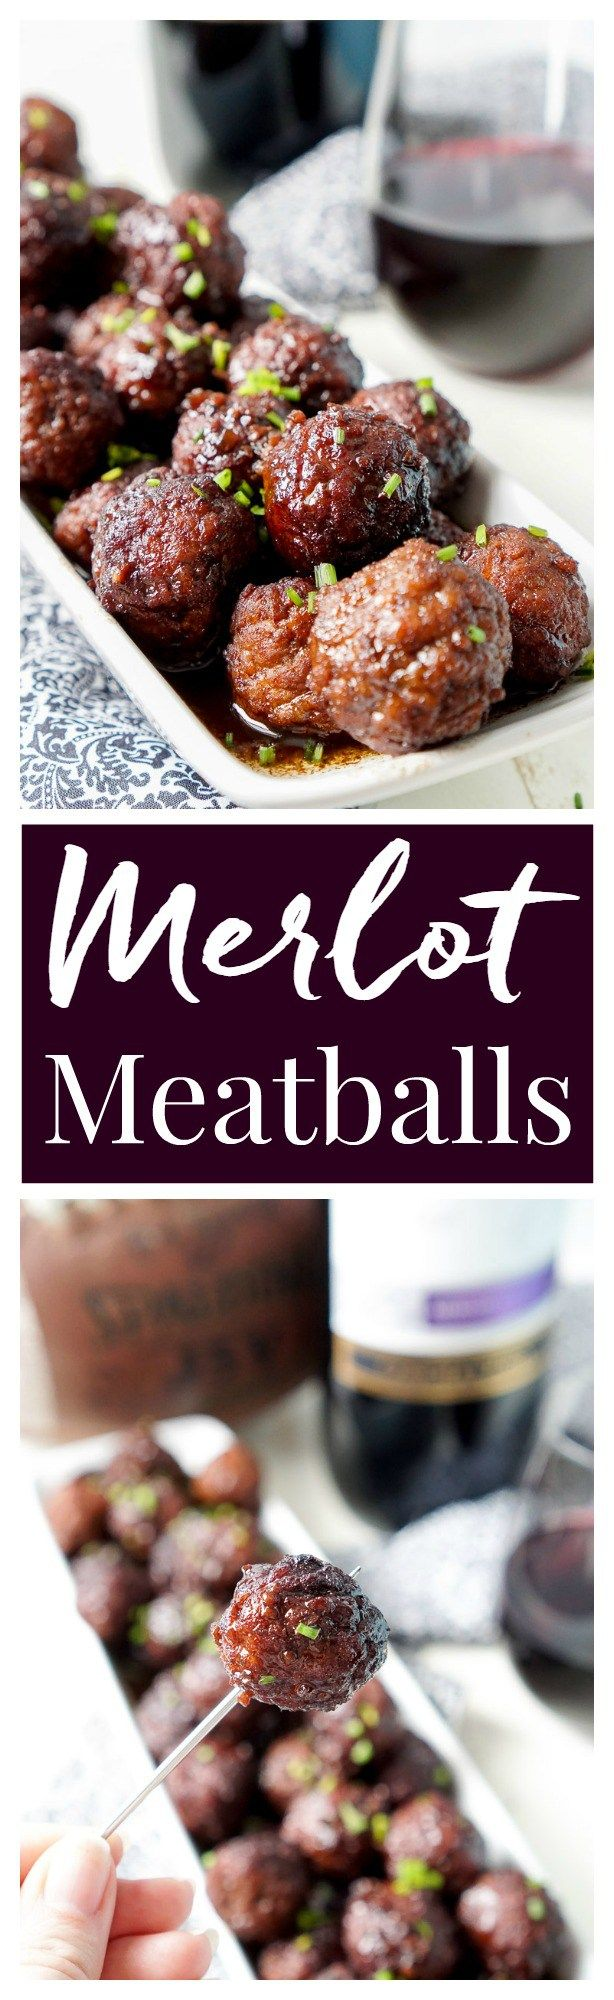 These Merlot Meatballs are made with a balsamic vinegar and Frontera Merlot wine…